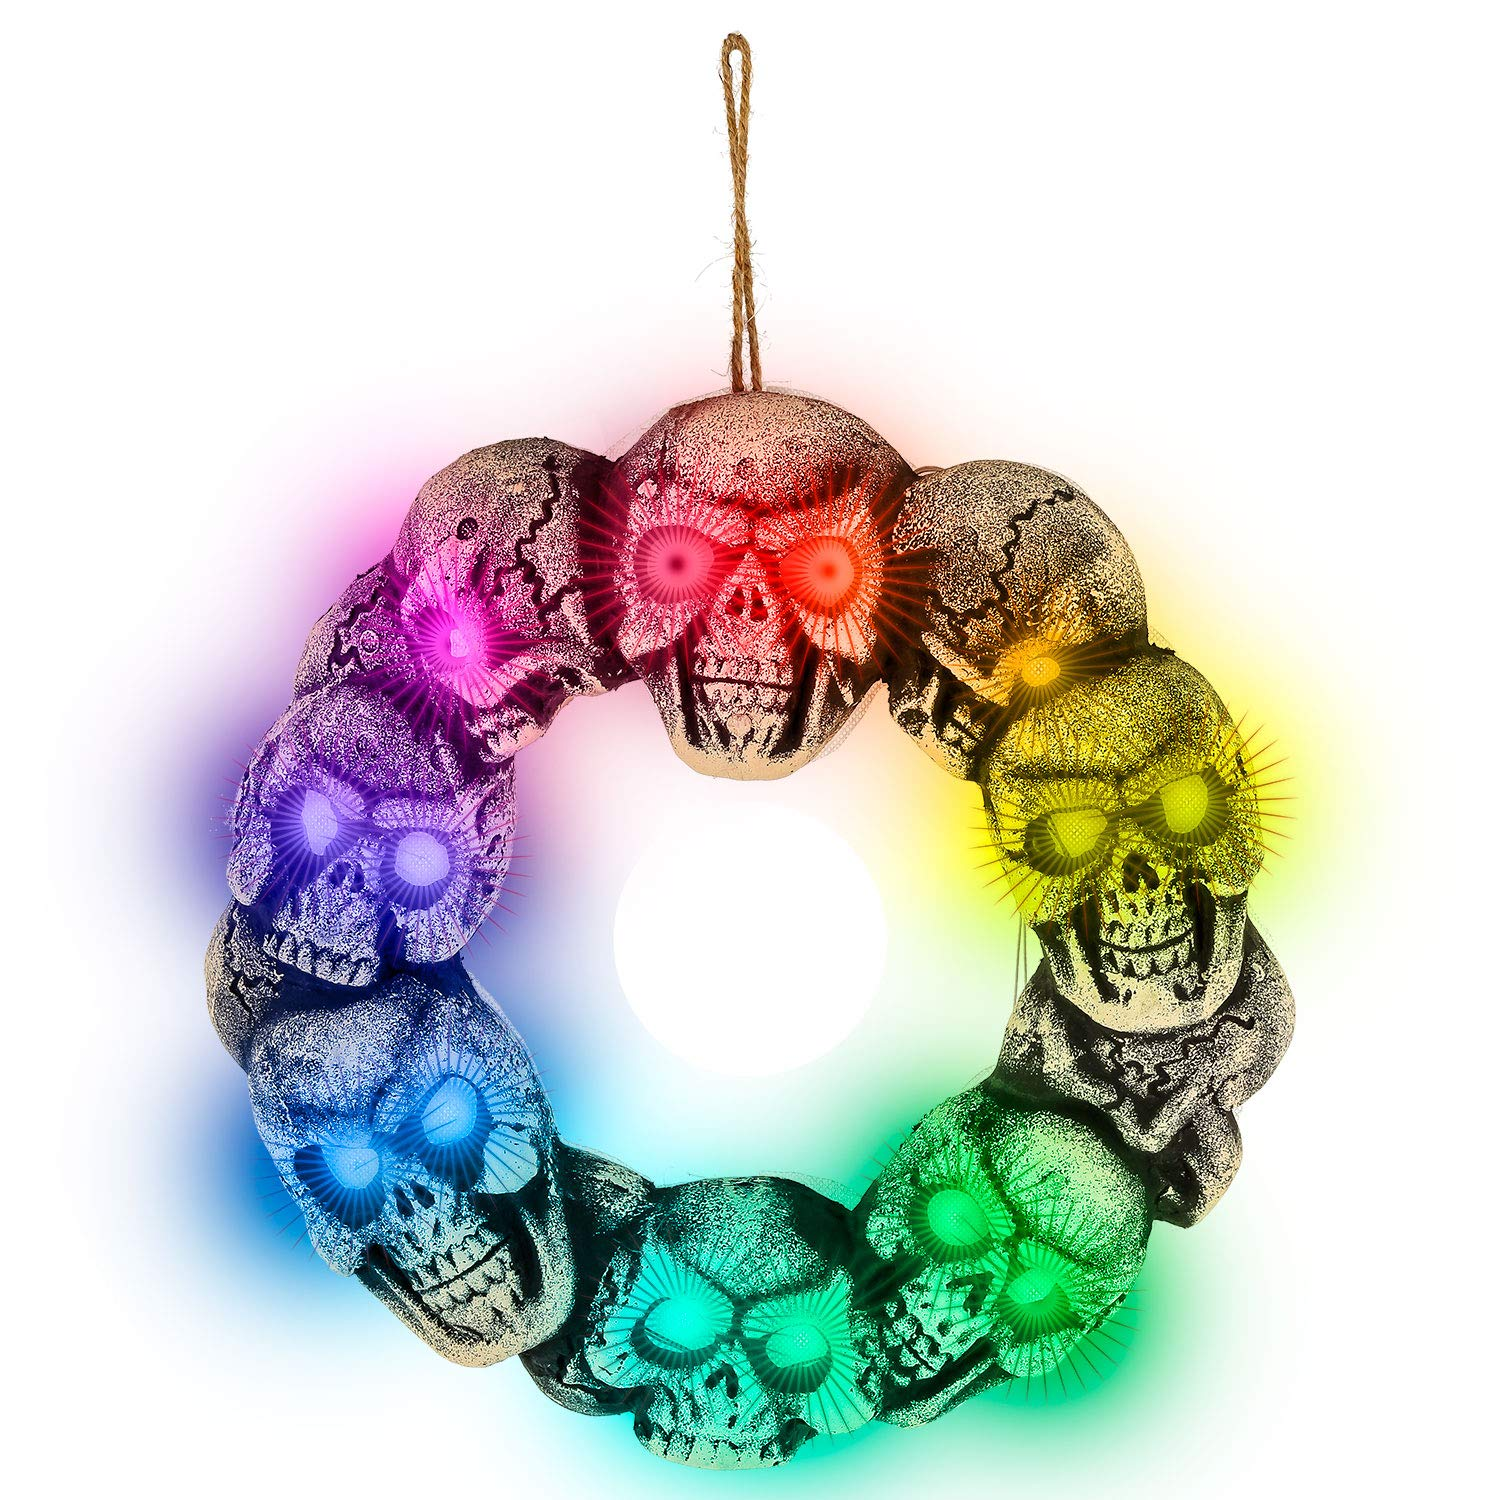 Halloween Haunters Skull Door Wreath with Flashing Multi-Color LED Lights Prop Decoration - Spooky Light-Up Skeleton Head Haunted House Entryway